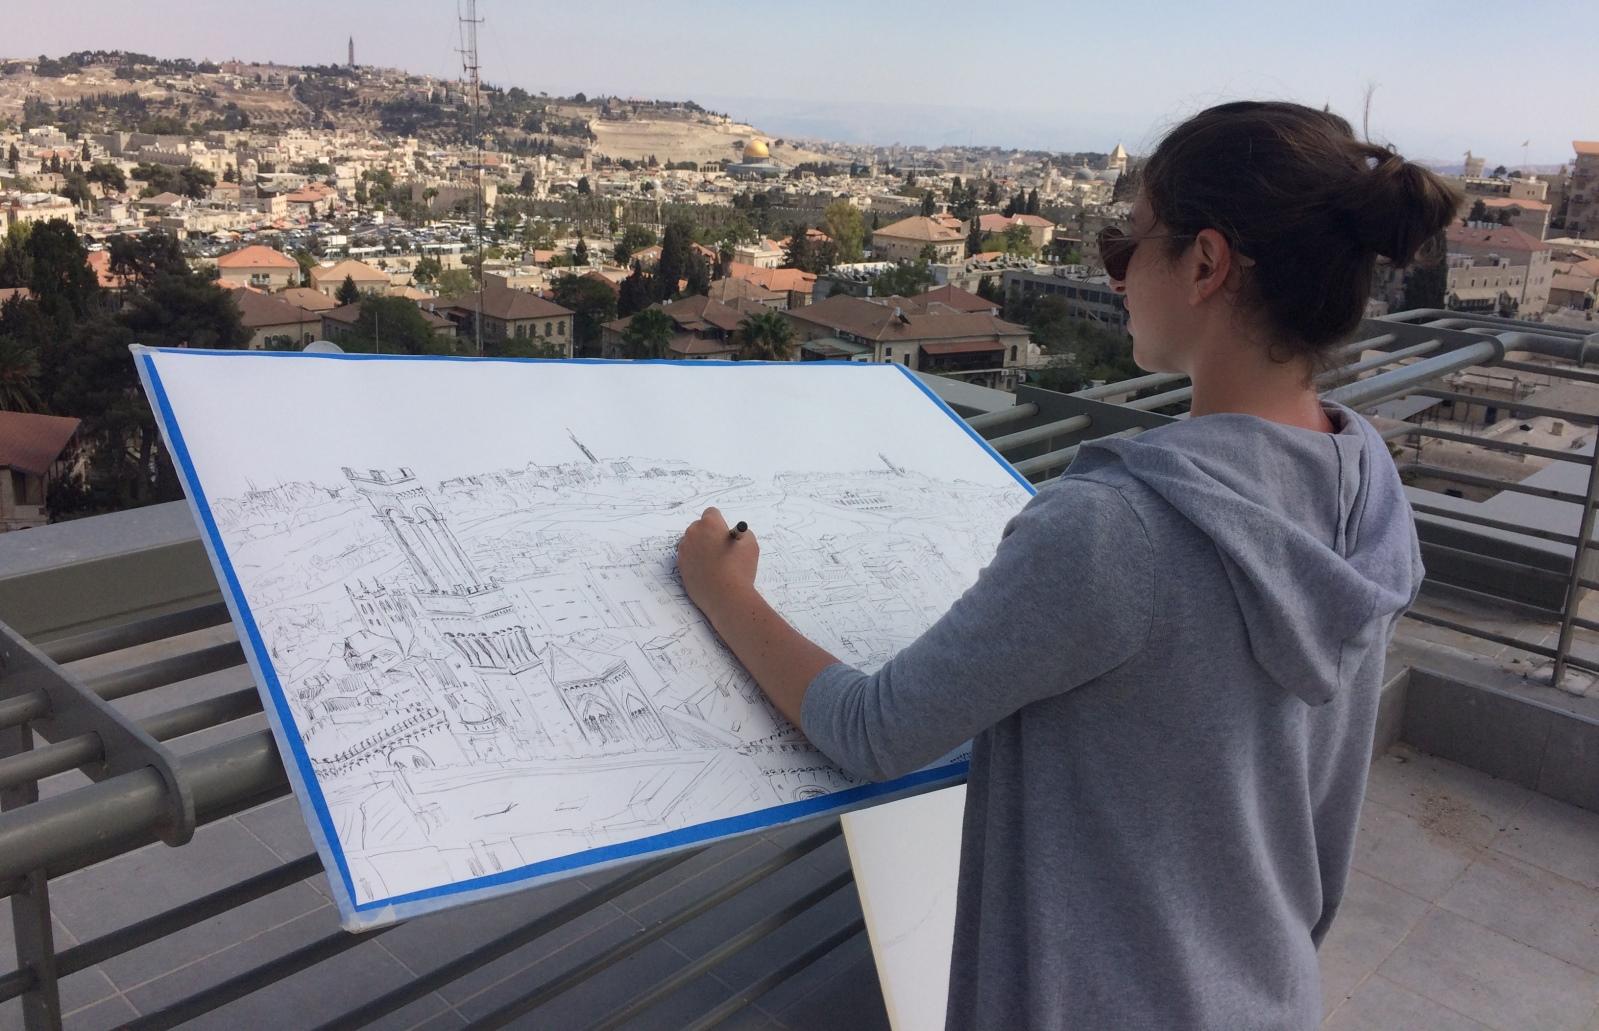 Lenore Cohen took up a position on the roof of Boutique Hanevi'im to draw her version of the skyline. Photo courtesy of Jerusalem Biennale